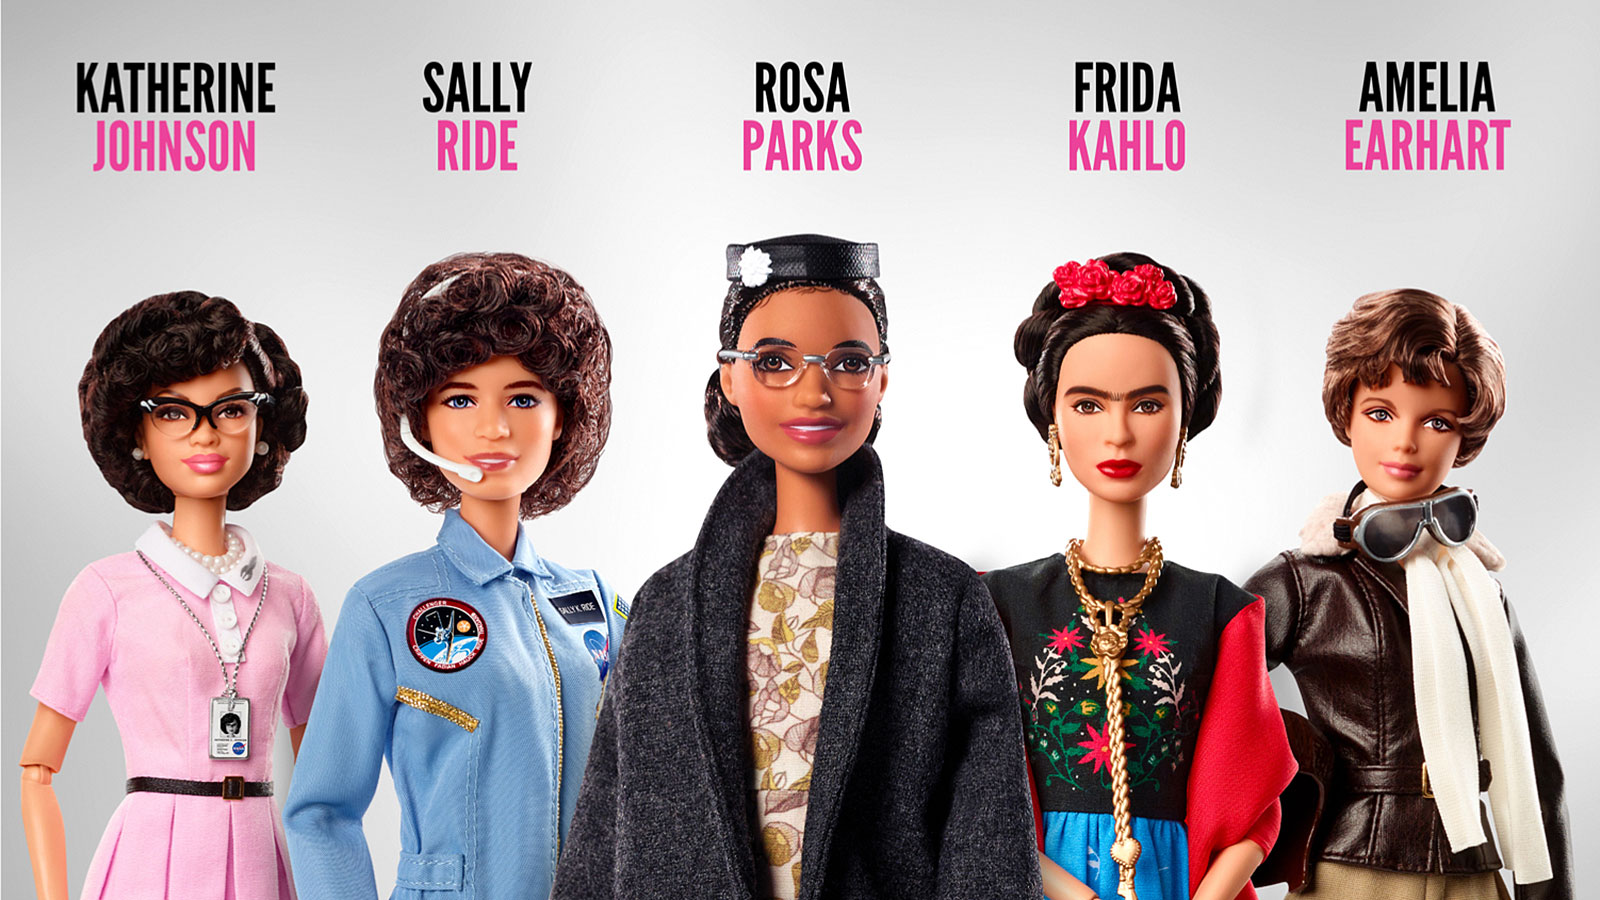 This new Barbie doll wants girls to explore STEM career paths